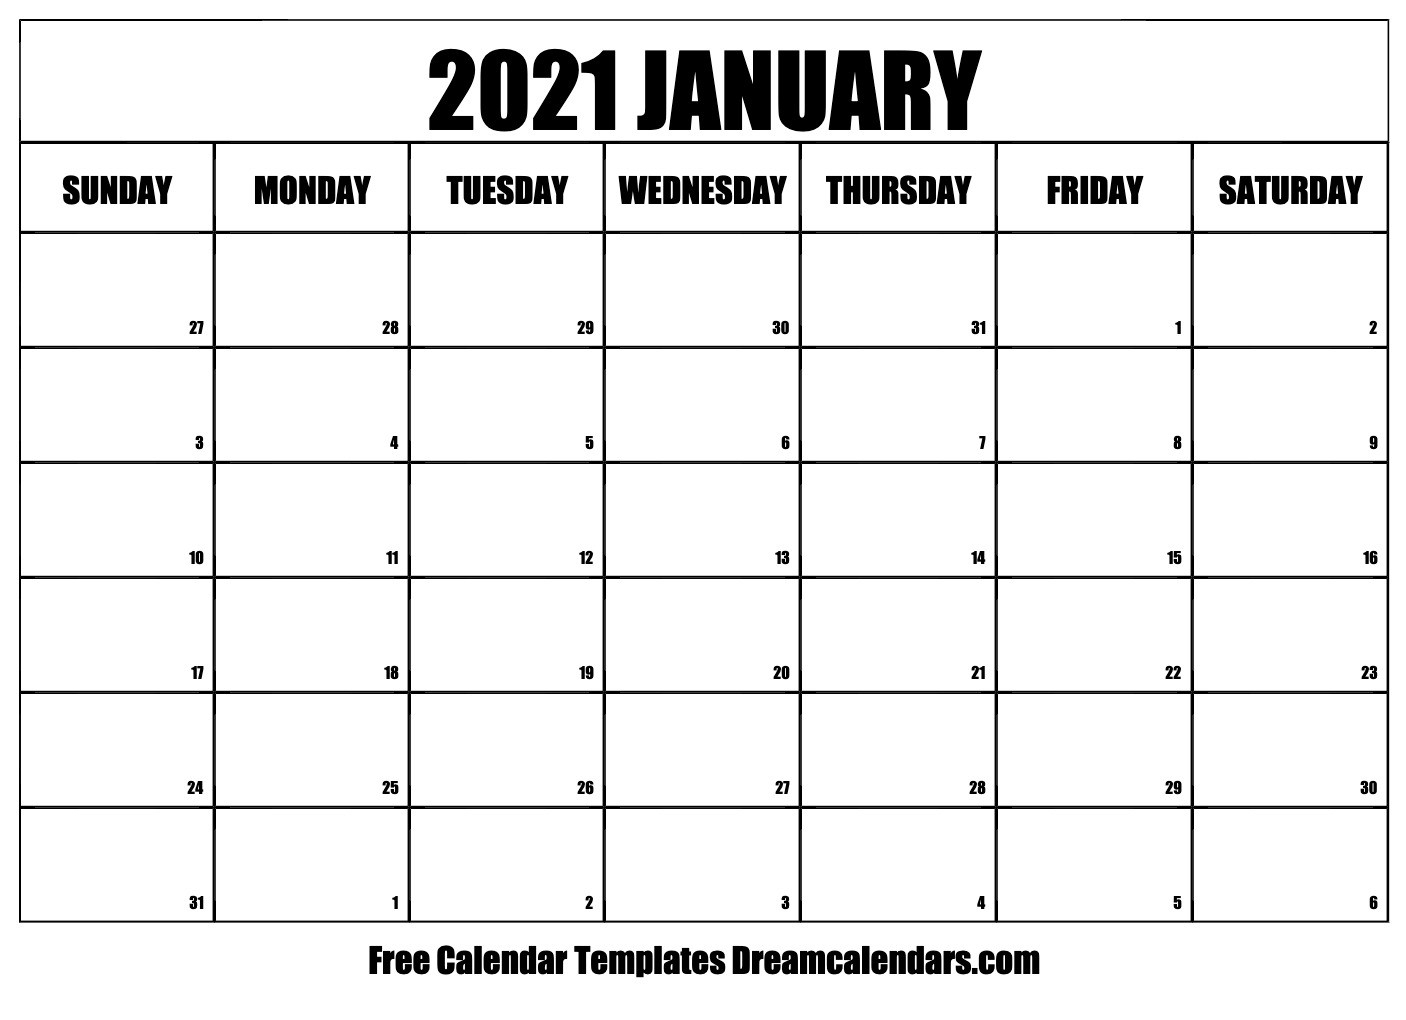 January 2021 Calendar | Free Blank Printable Templates-2021 Calendar Free Printable-Monthly Bills